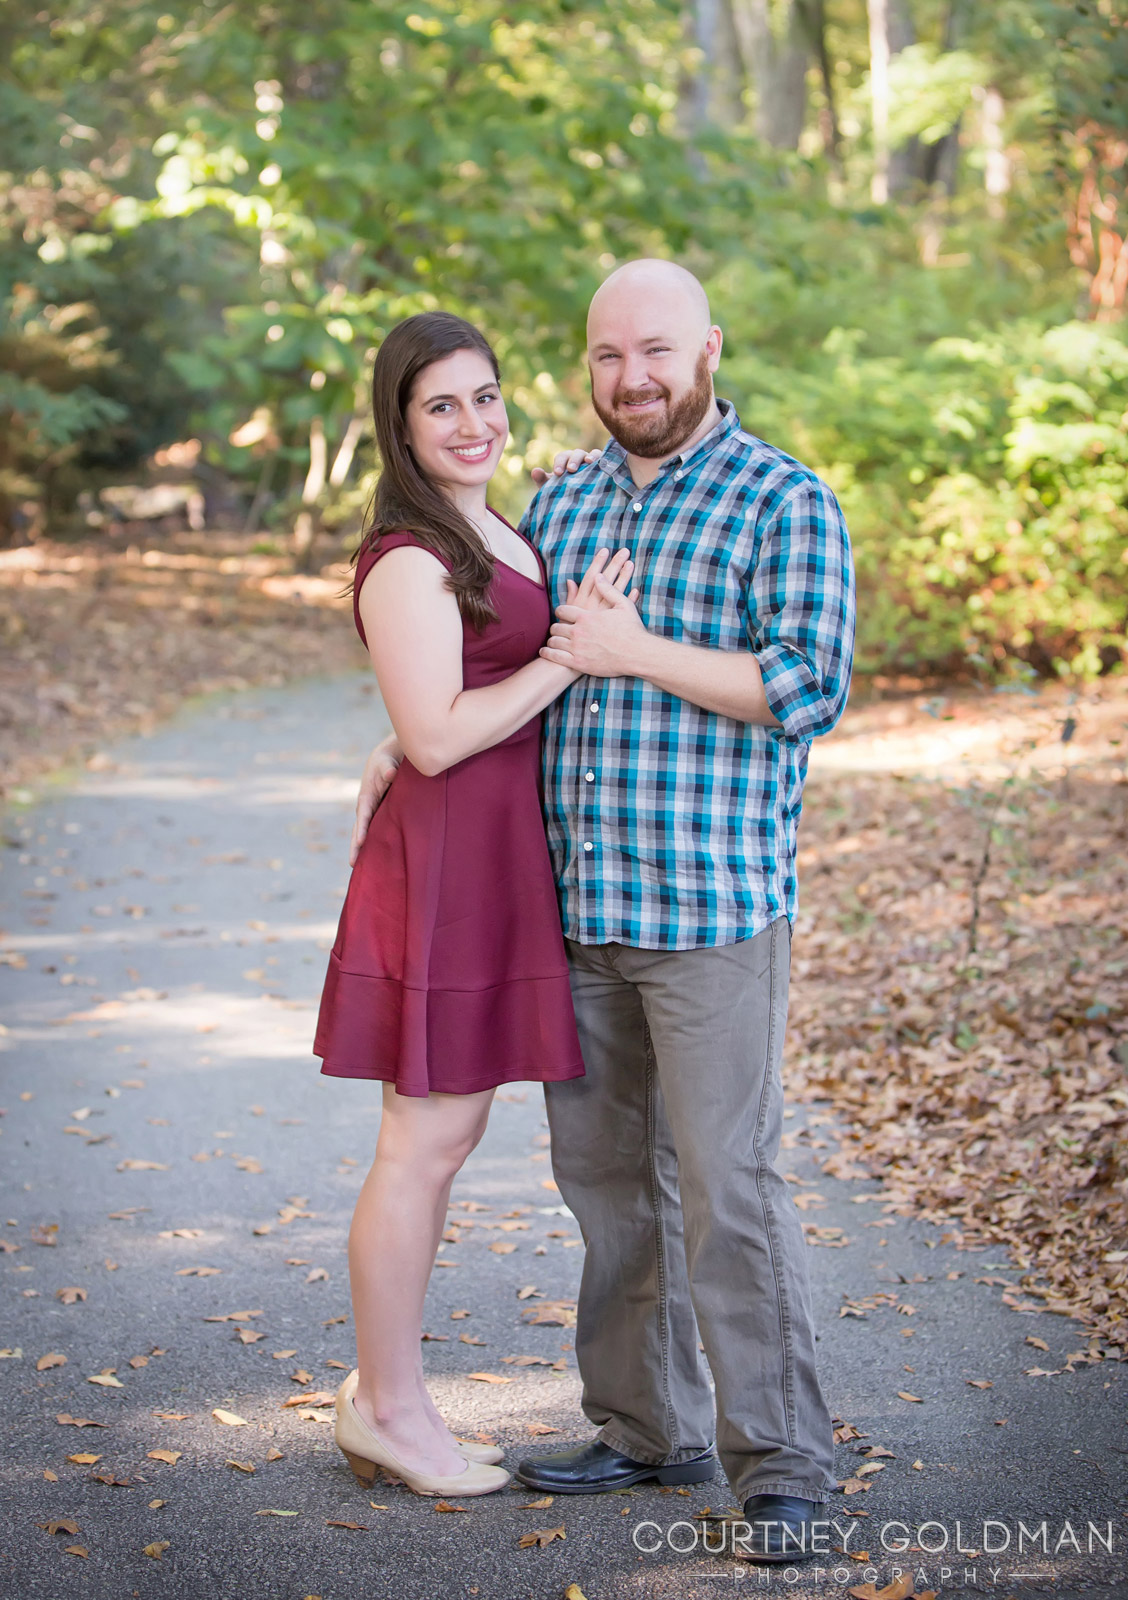 Atlanta-Couples-Engagement-Proposal-Photography-by-Courtney-Goldman-38.jpg